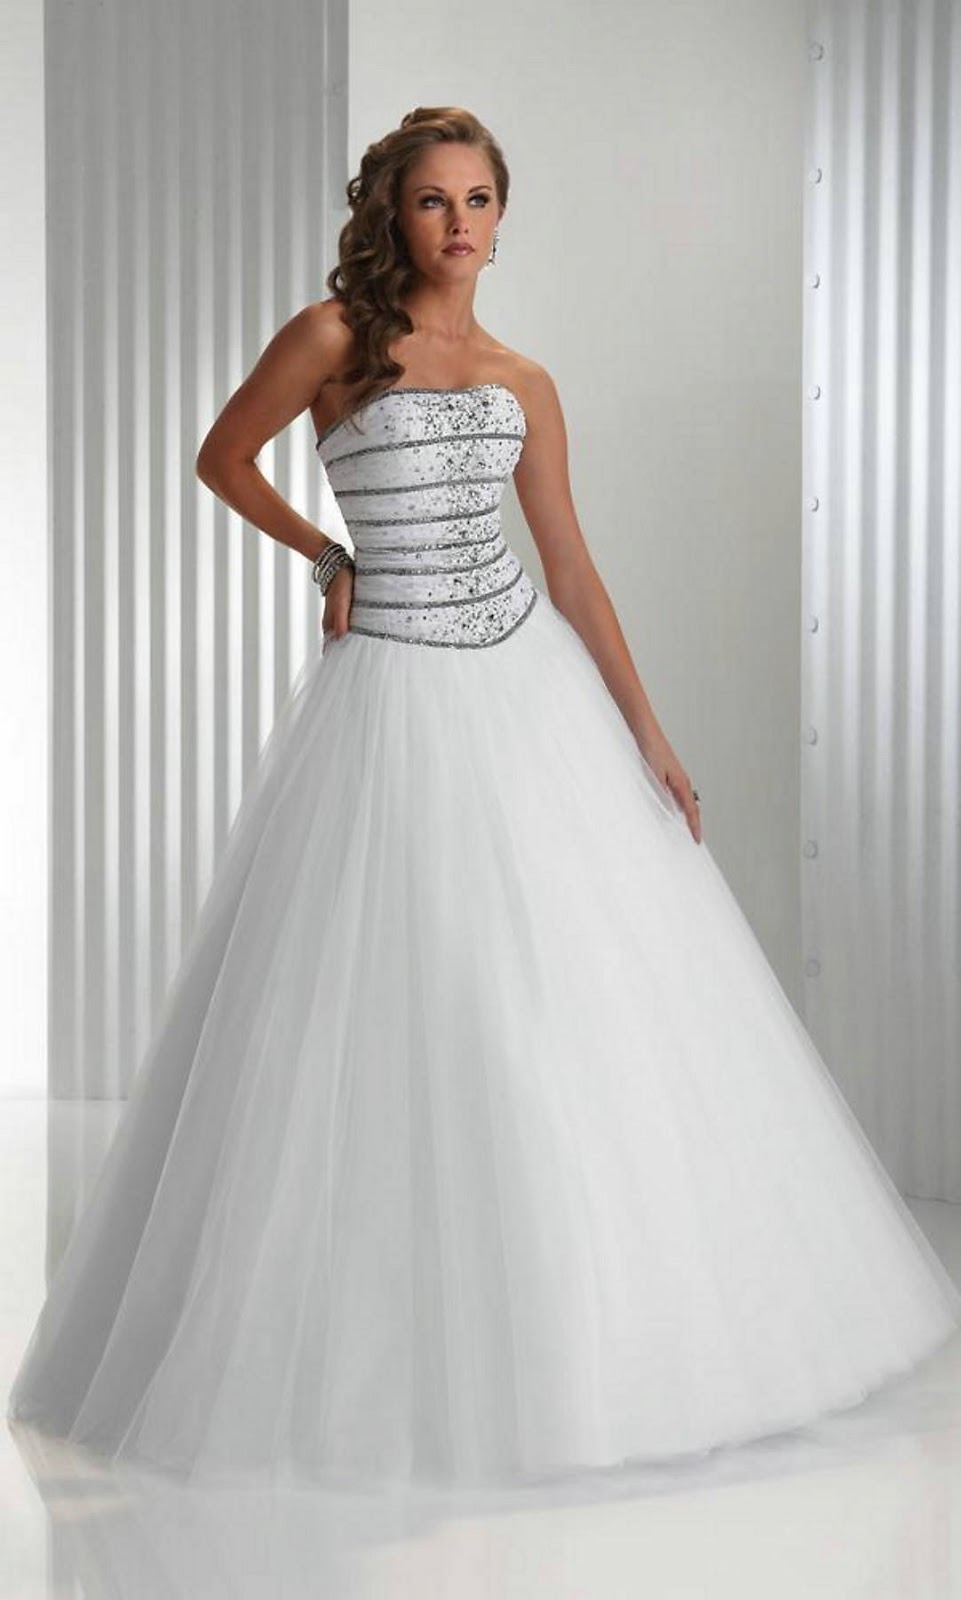 Curly Bob Hairstyles White Prom Dresses